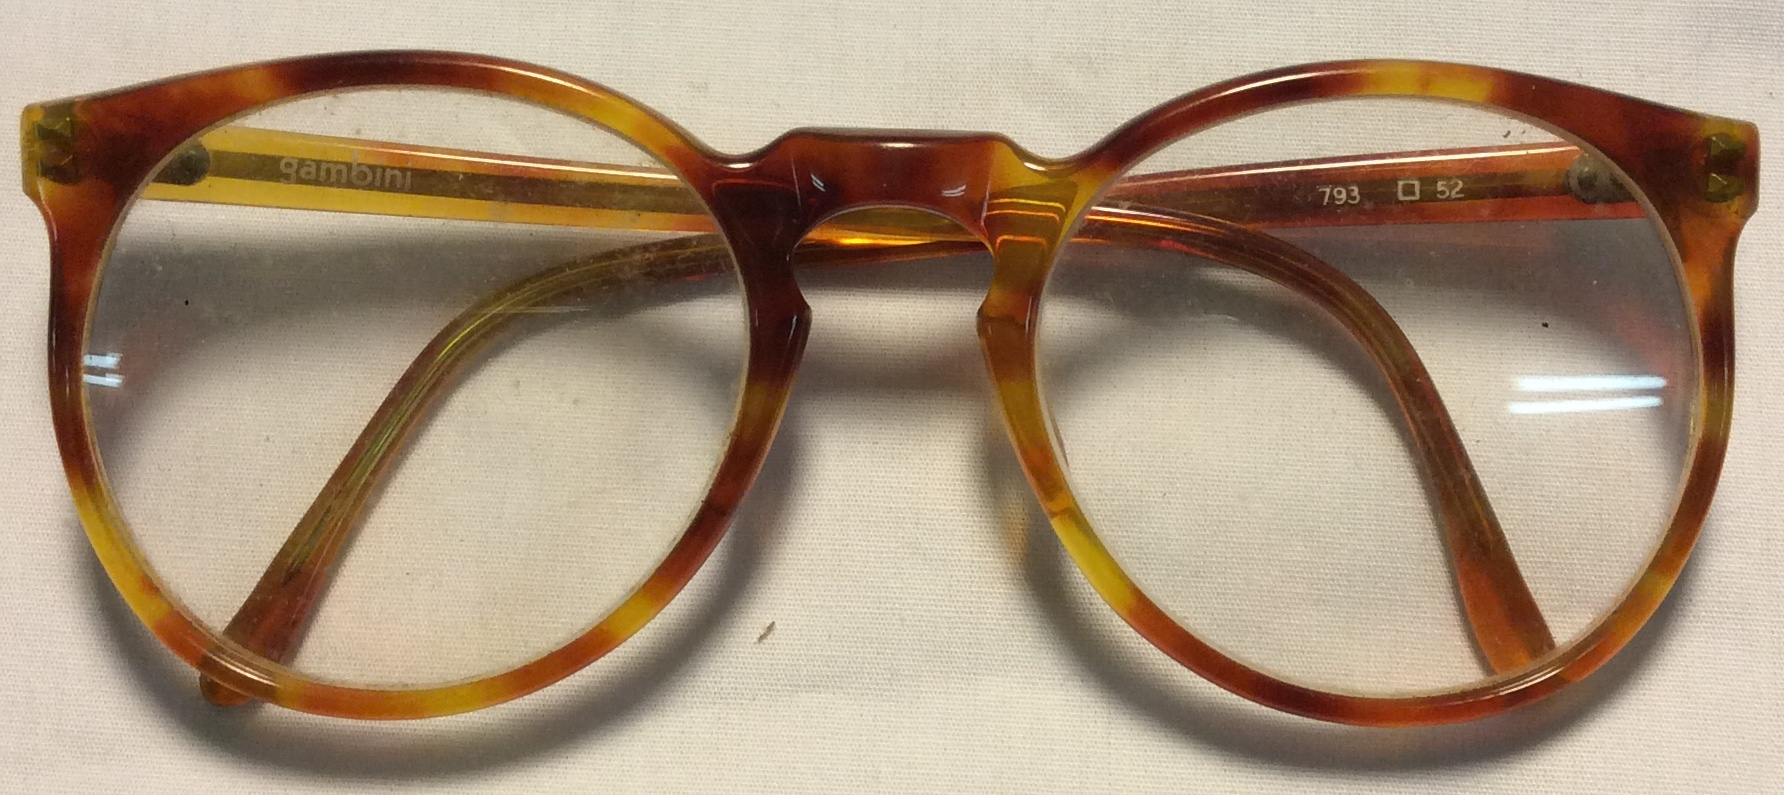 Gambini Thin tortoise shell marbled